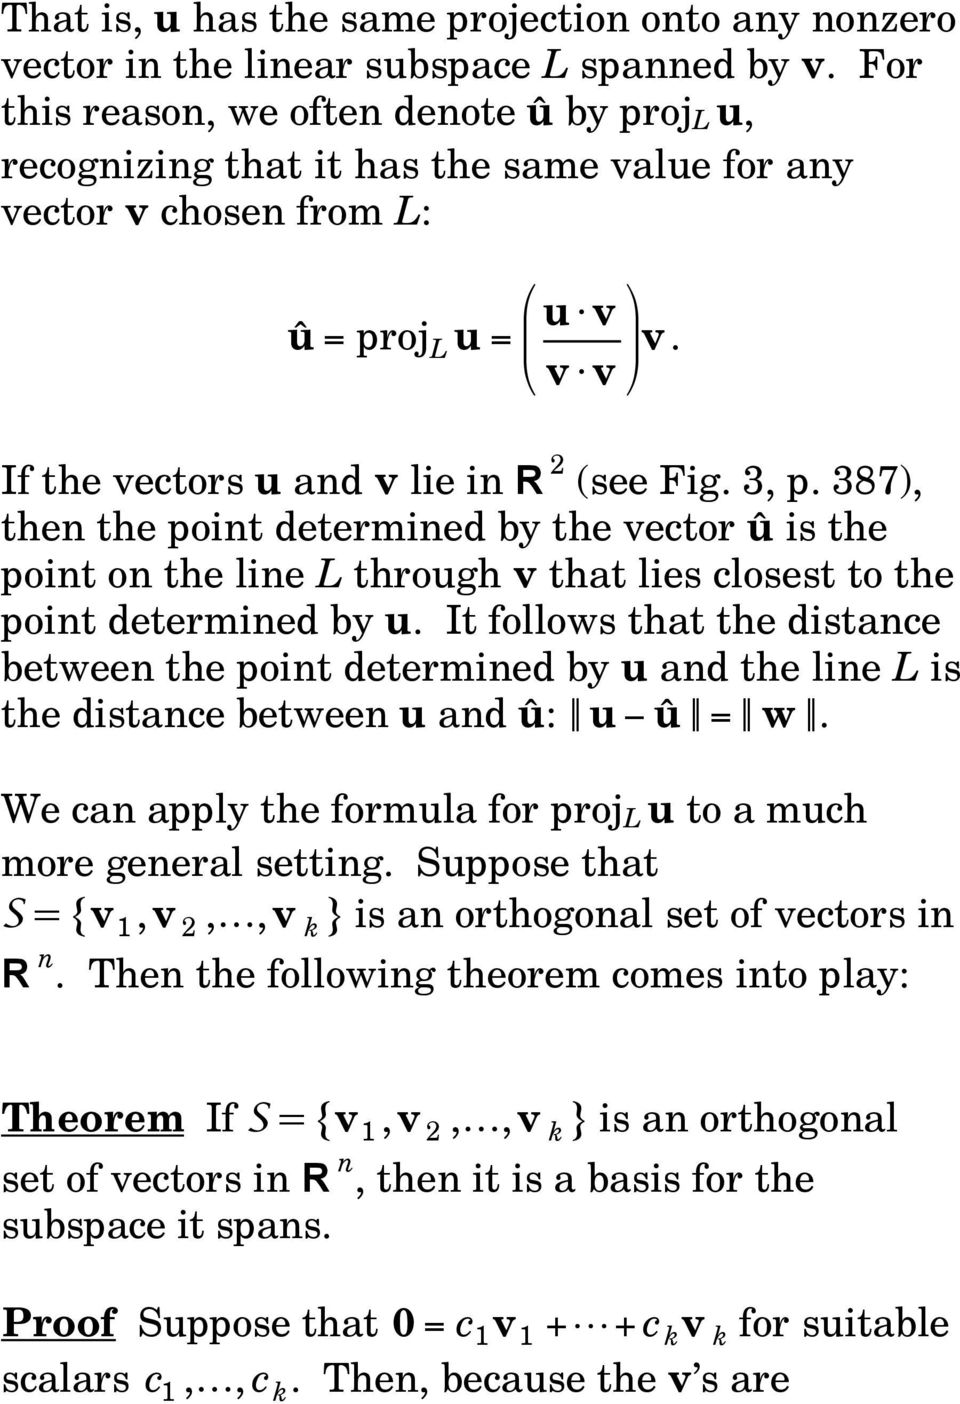 387), then the point determined by the vector û is the point on the line L through v that lies closest to the point determined by u.